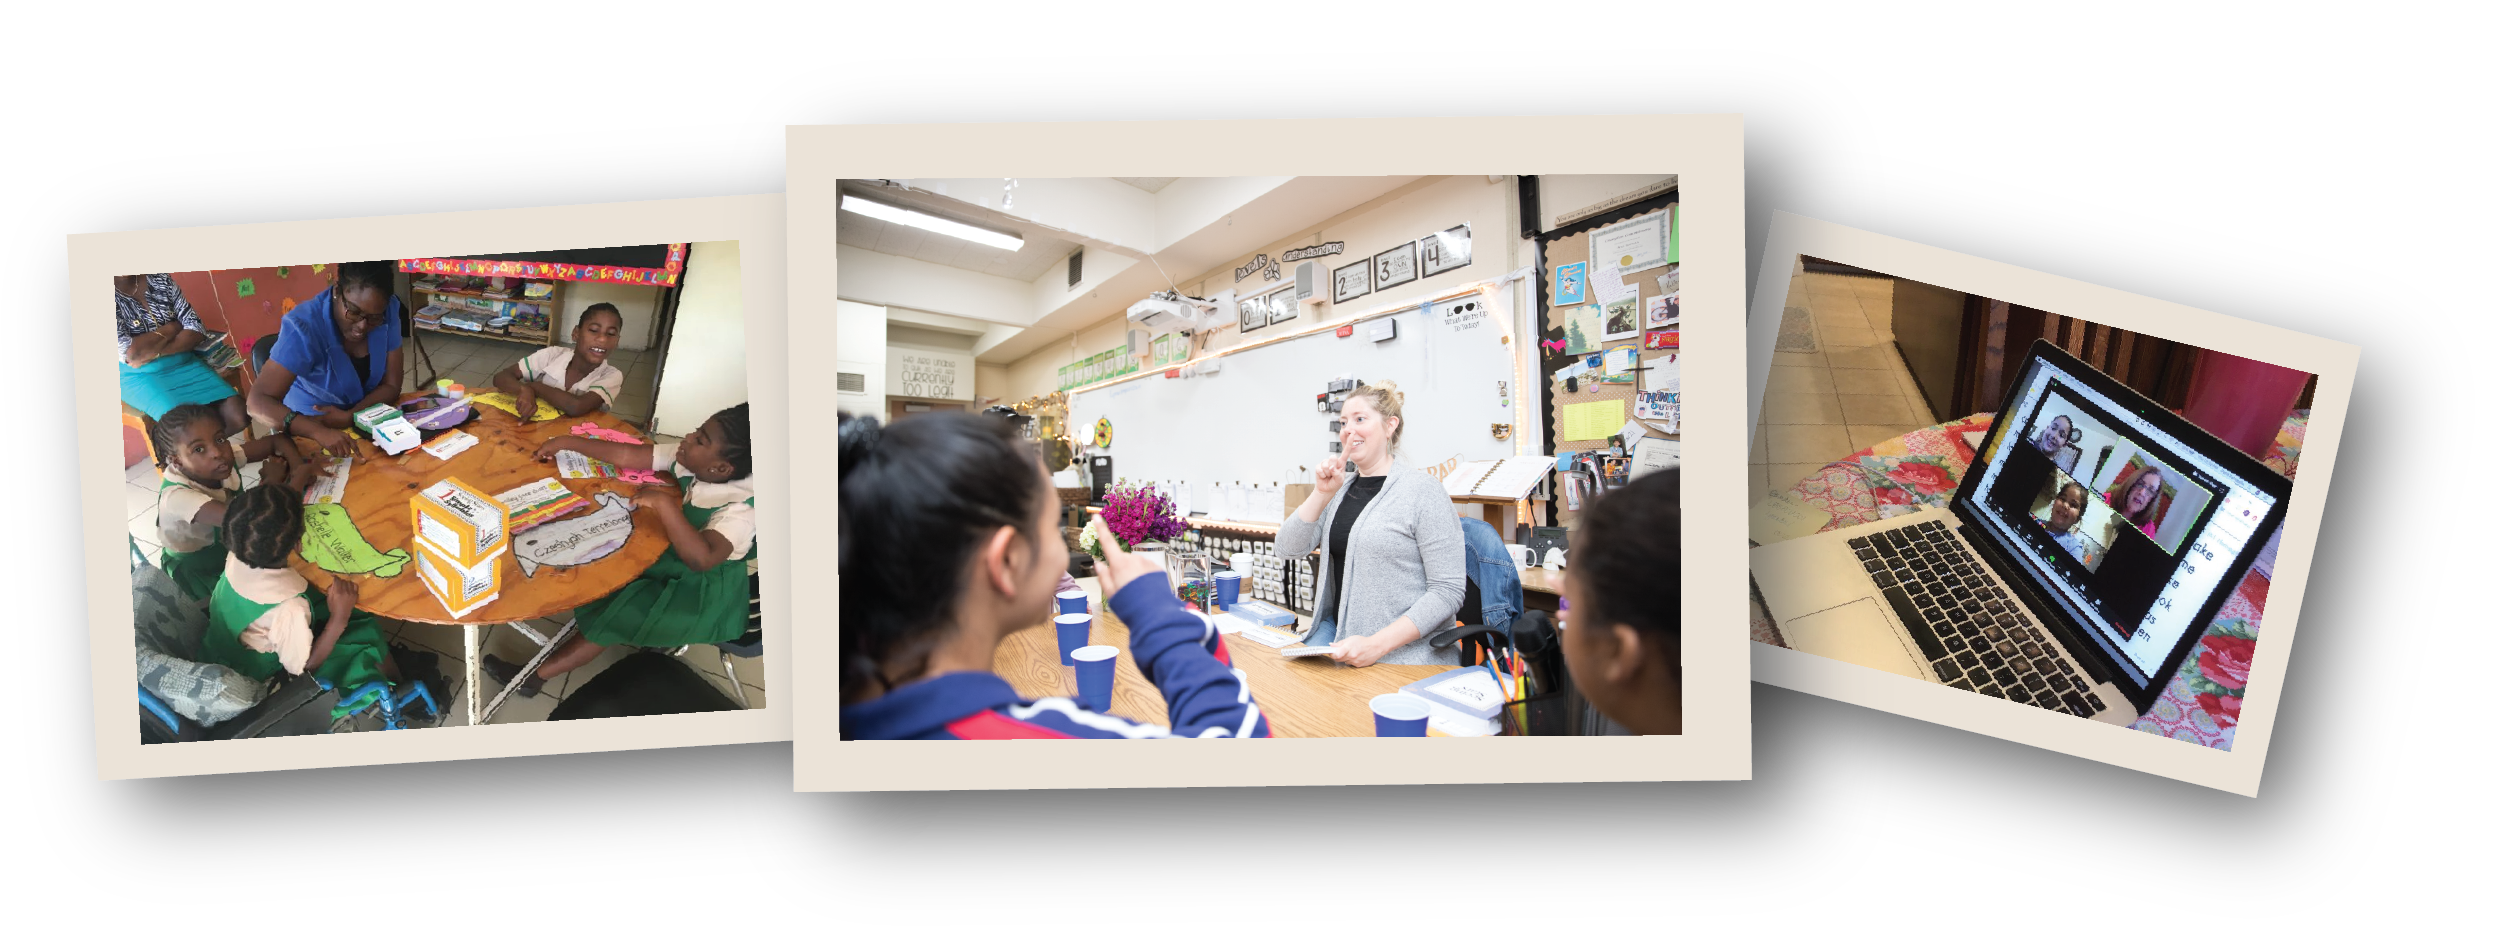 3 photos of teachers and children working together